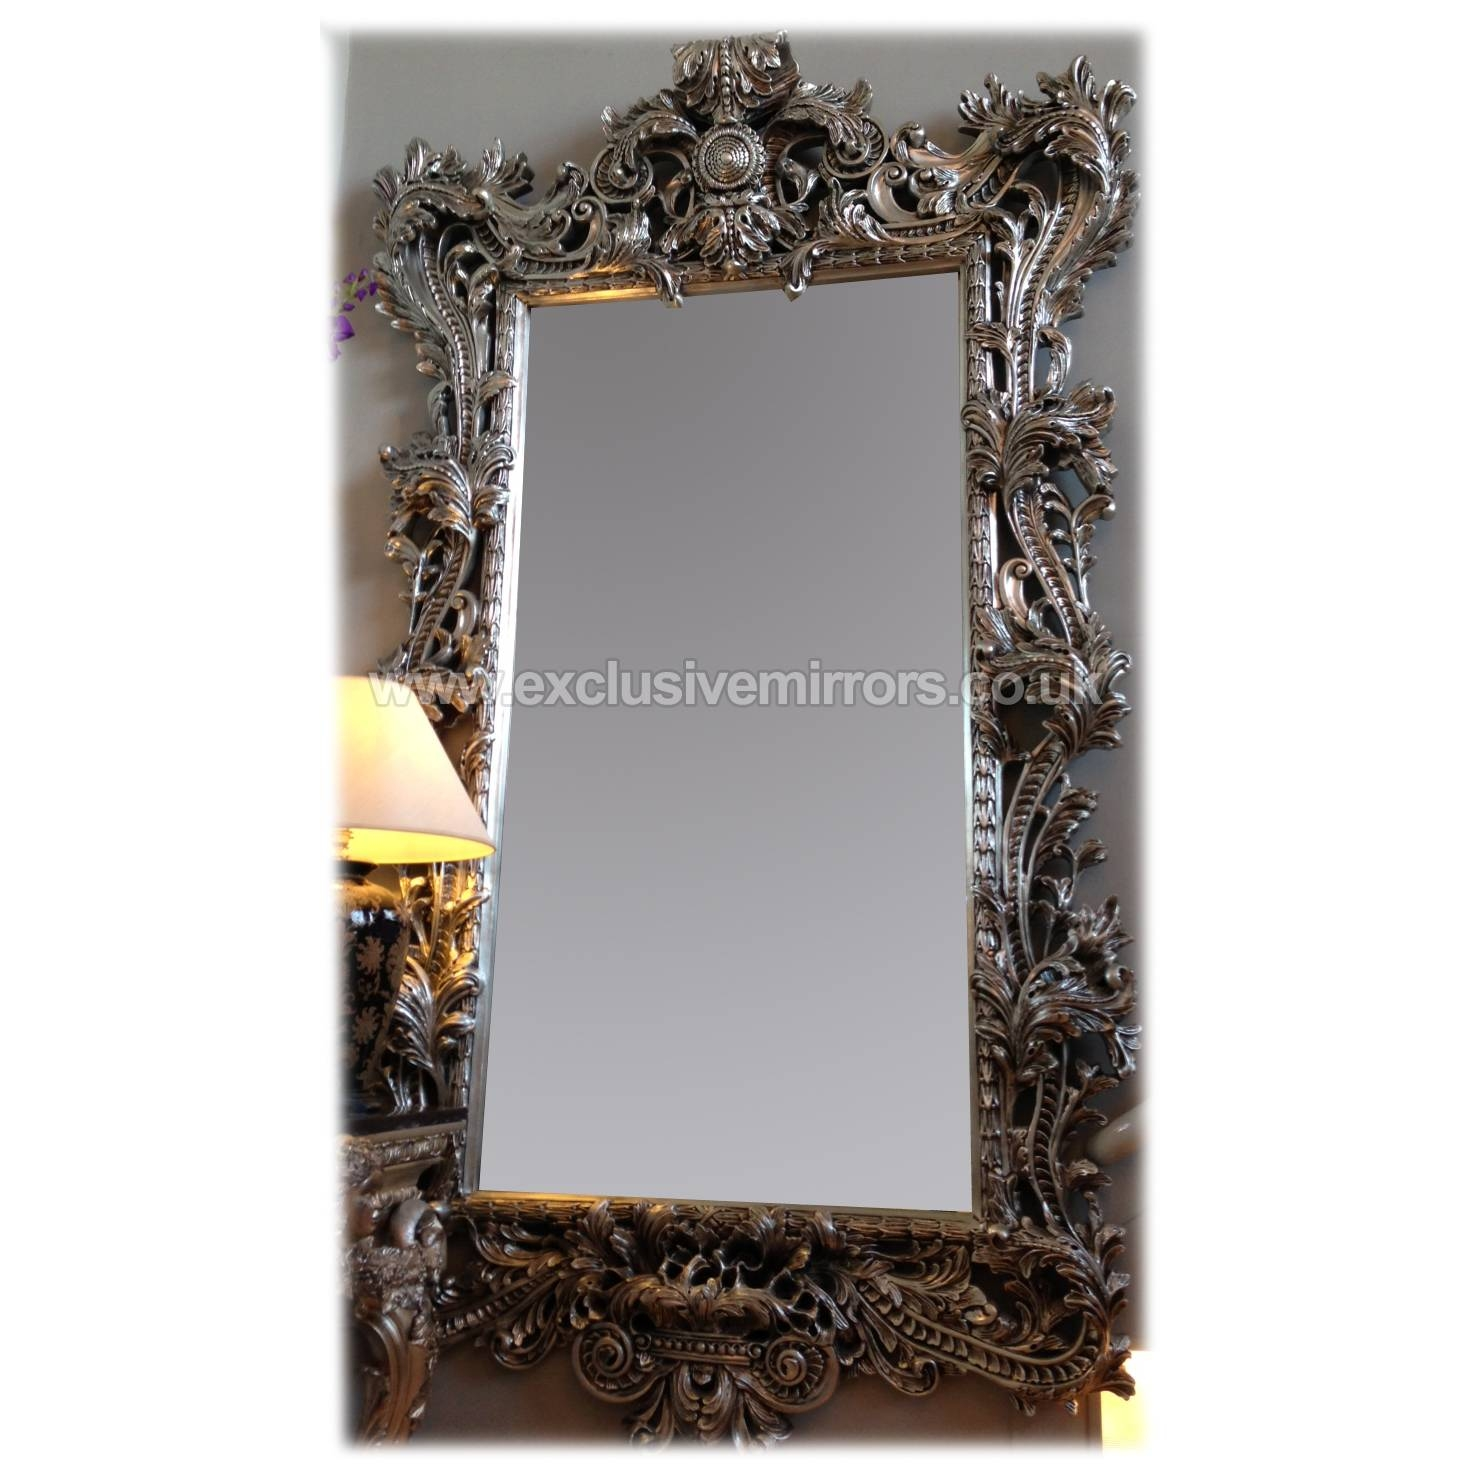 Extra Large Wall Mirrors | Inovodecor with Unusual Large Mirrors (Image 20 of 25)